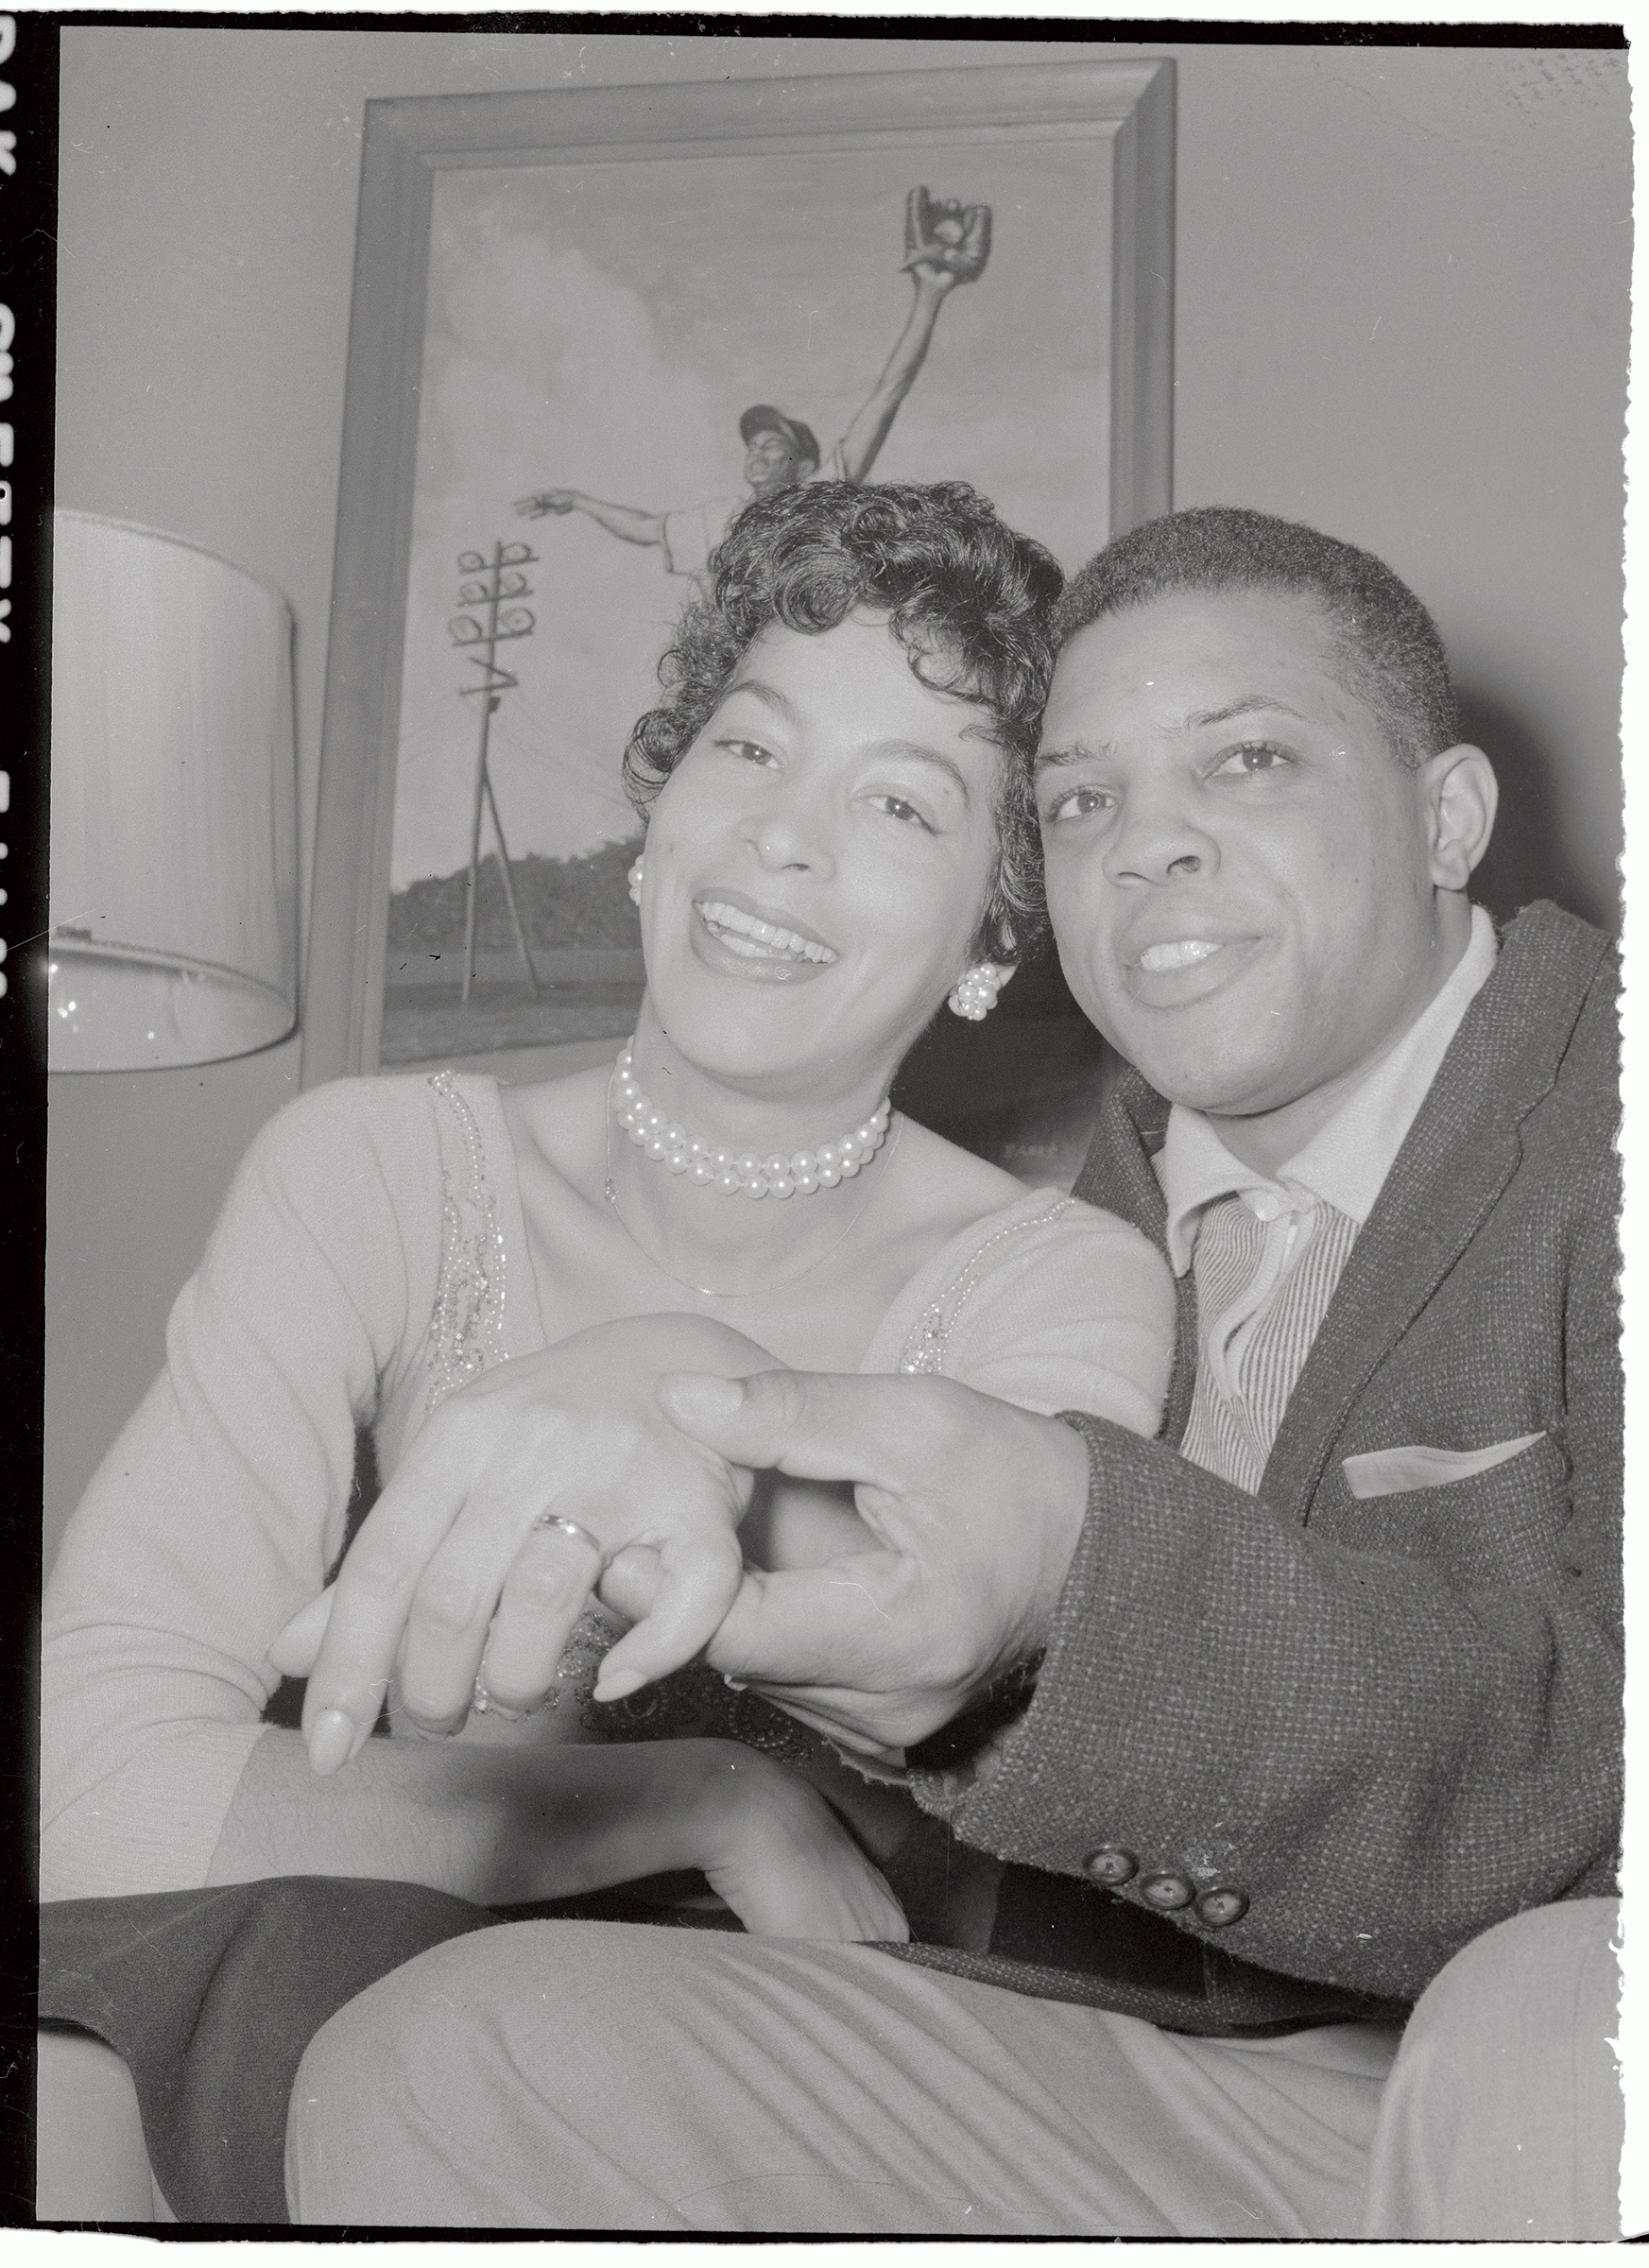 New York Giants star outfielder Willie Mays, 25, is shown with his bride of a few hours, Marguerite Wendelle, 27, at her home in Elmhurst, N.Y. after their wedding in Elkton, Md. on Feb. 14, 1956. En route to Elkton, Mays was arrested for driving 70 miles an hour on the New Jersey turnpike and paid a $15 fine.